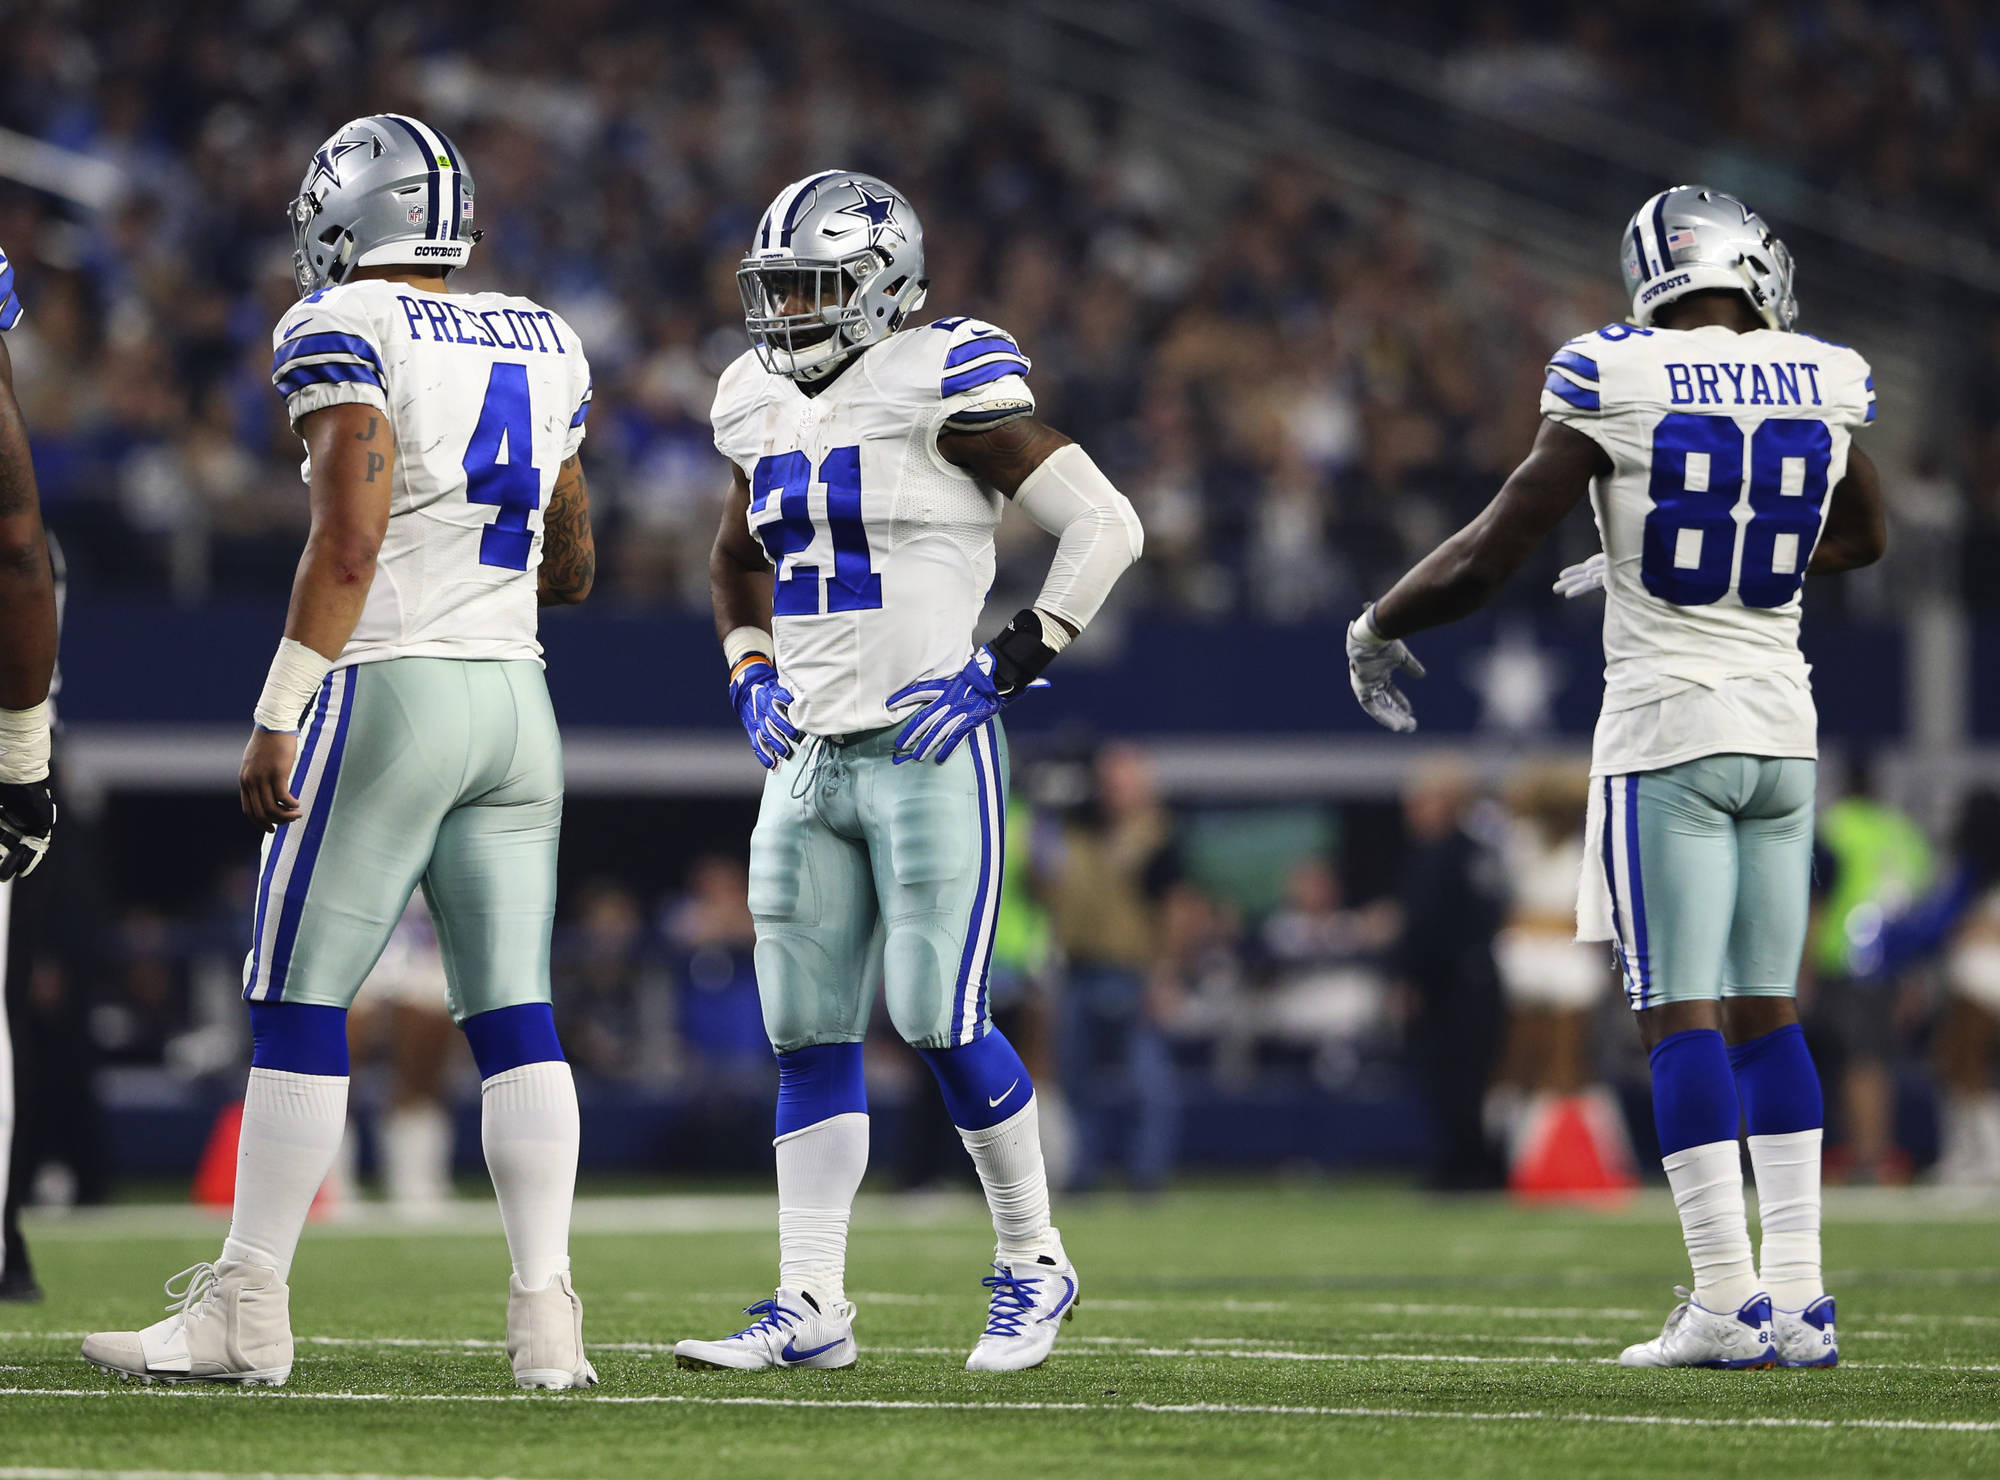 The Cowboys' Biggest Threat May Not Even Make the Playoffs